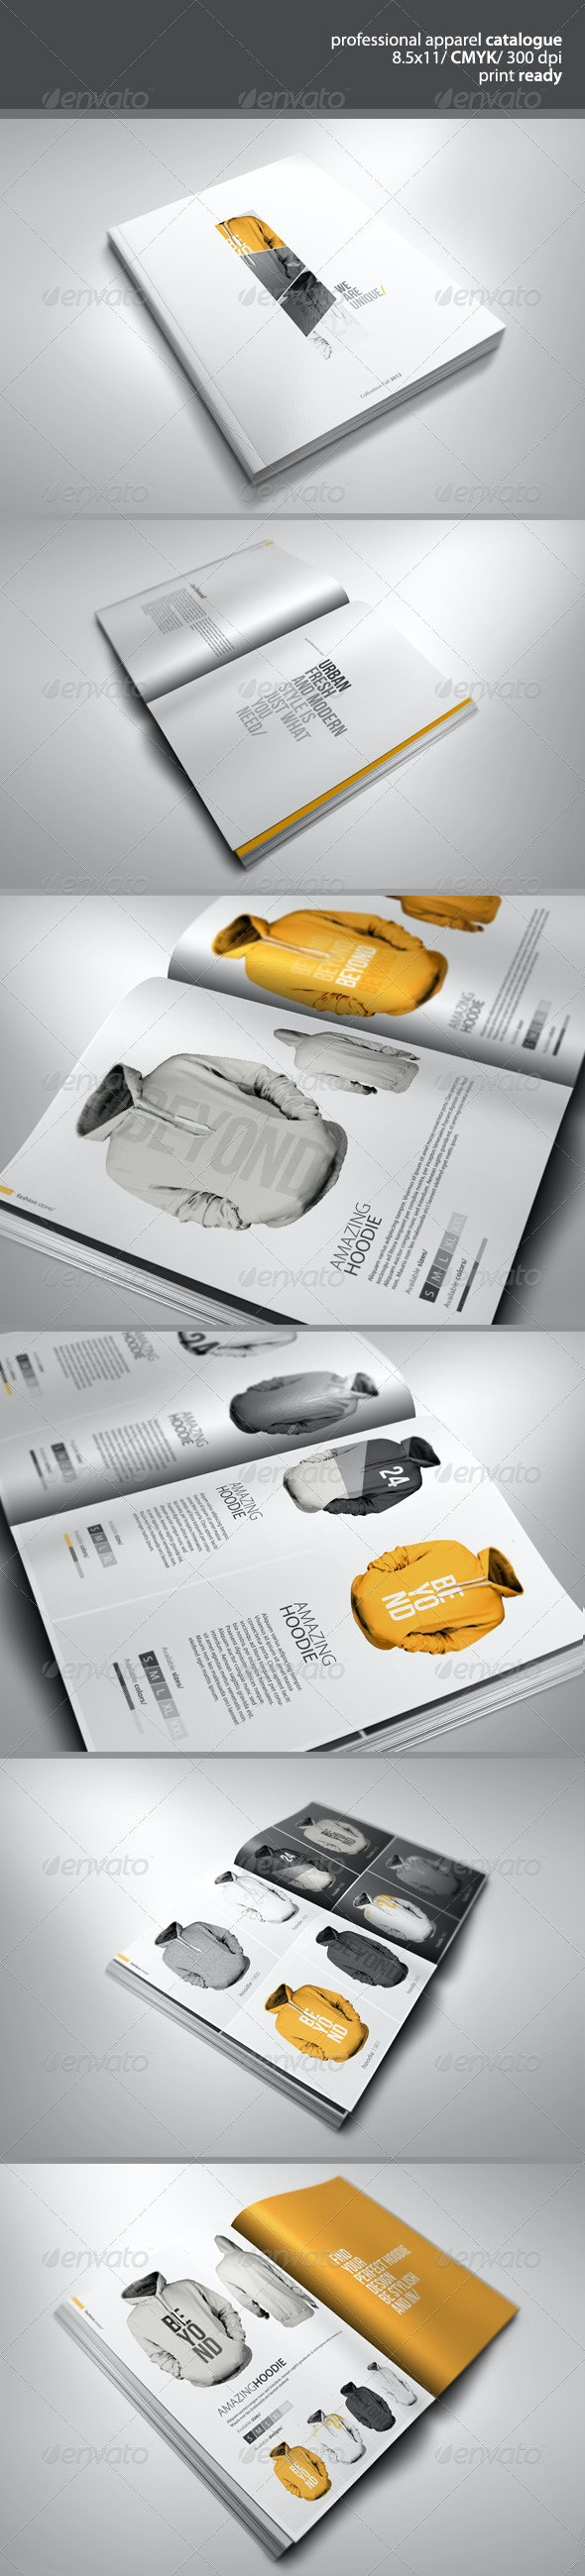 Professional Apparel Catalogue - Catalogs Brochures